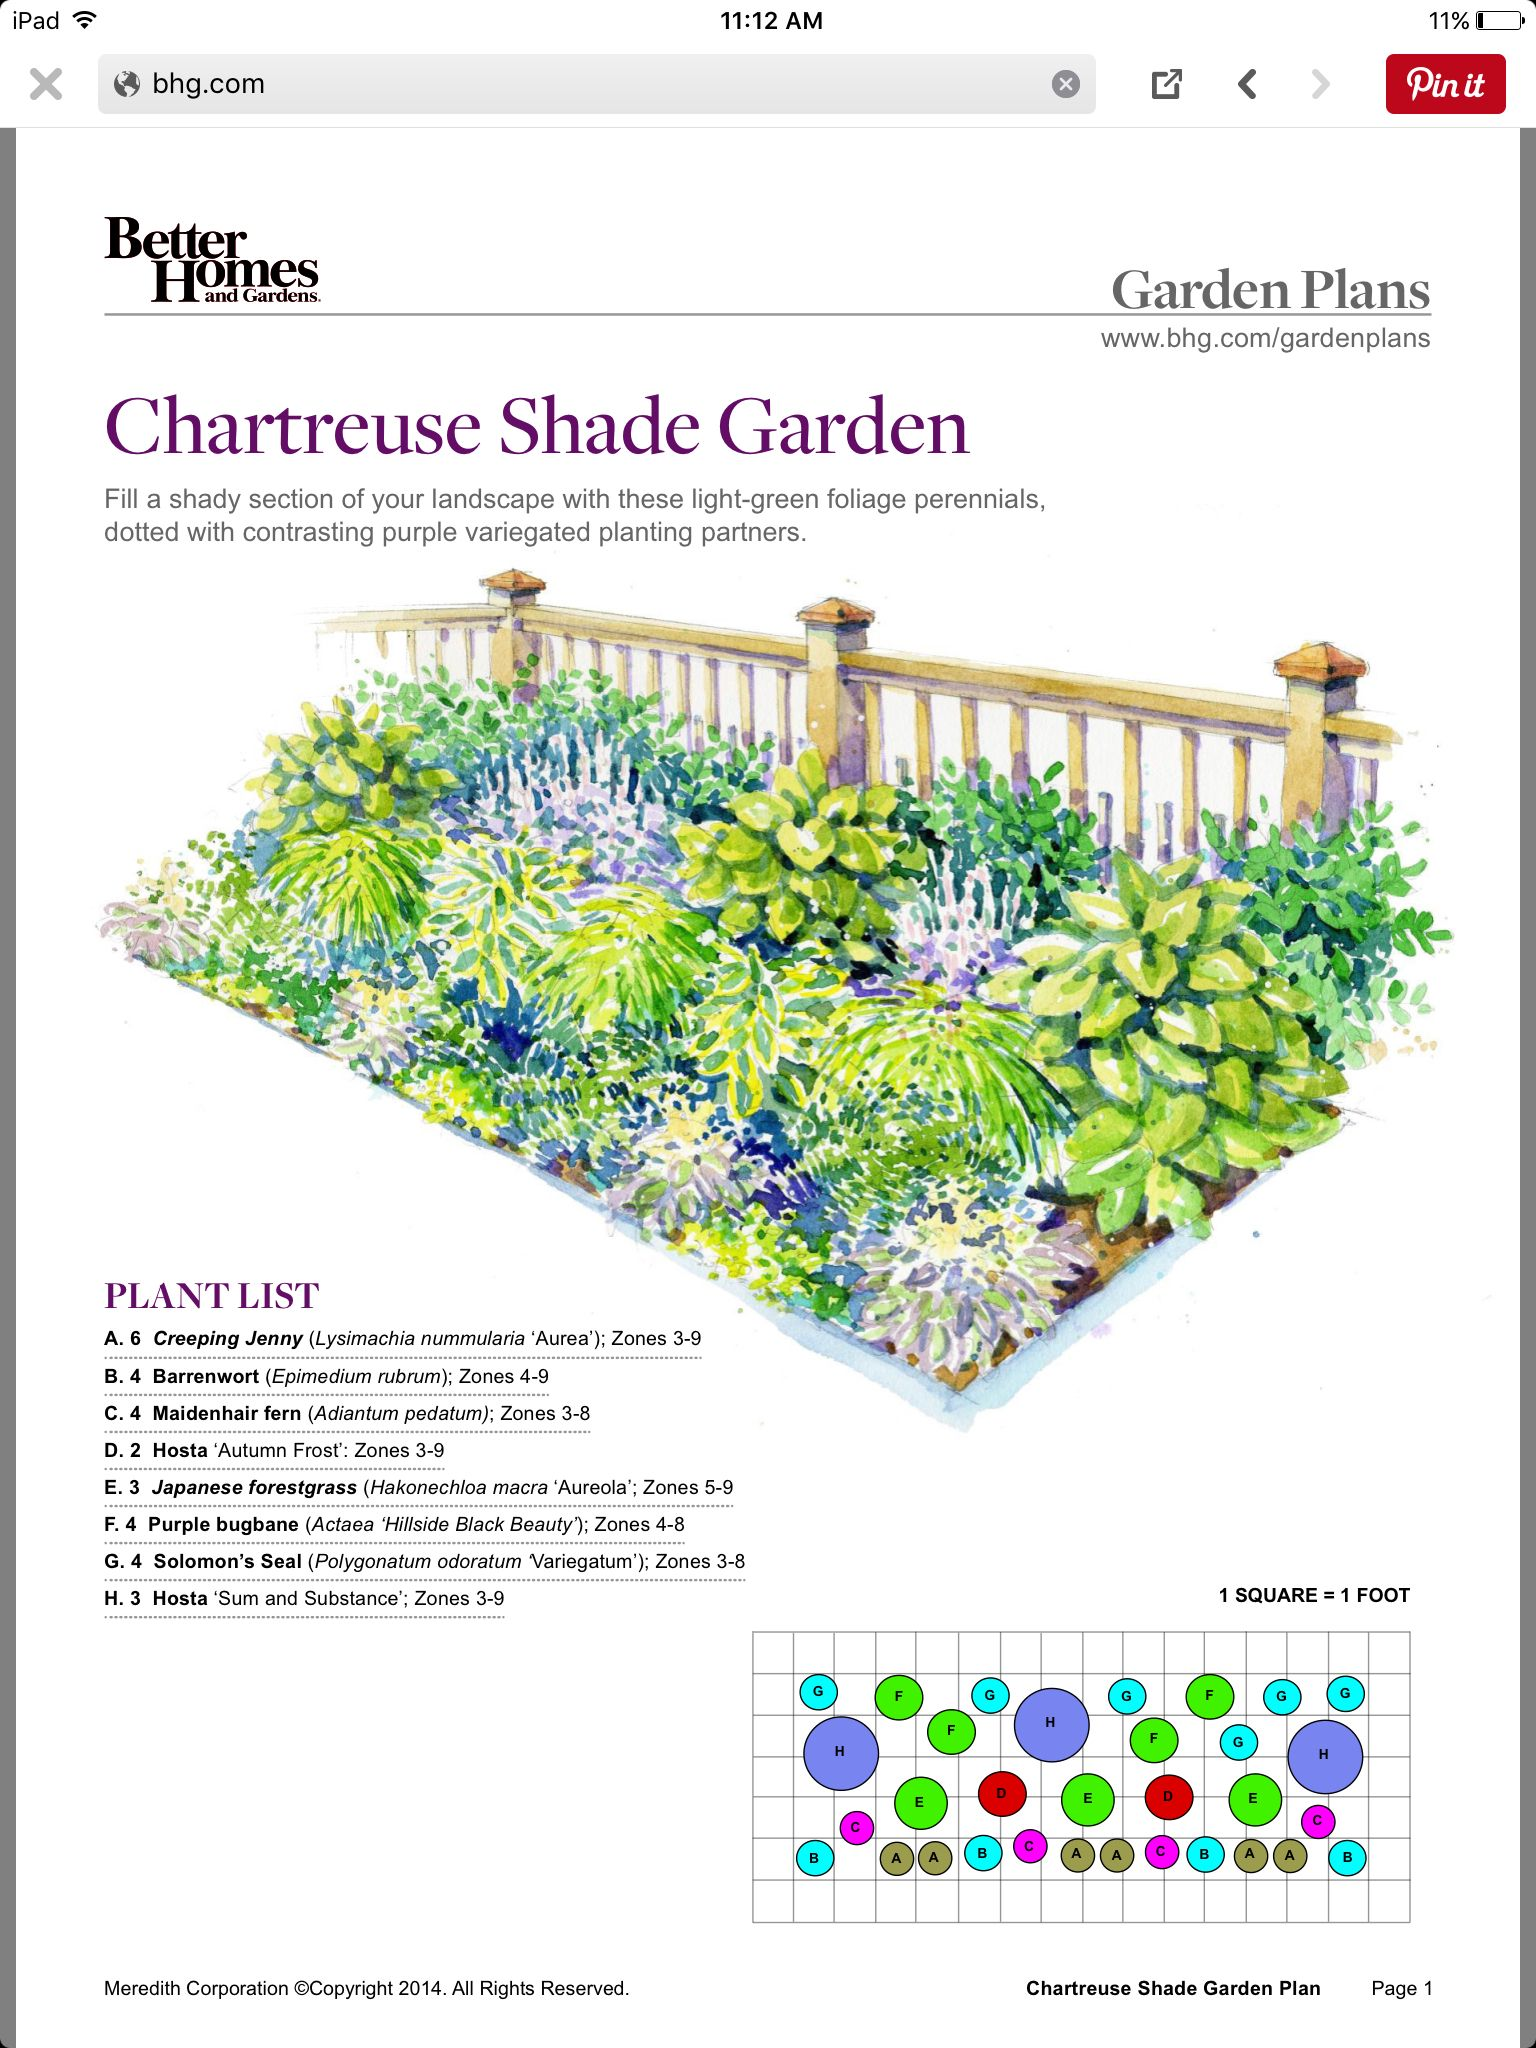 586037dce356e83214f19bc6626a7973 - Better Homes And Gardens Shade Garden Plans